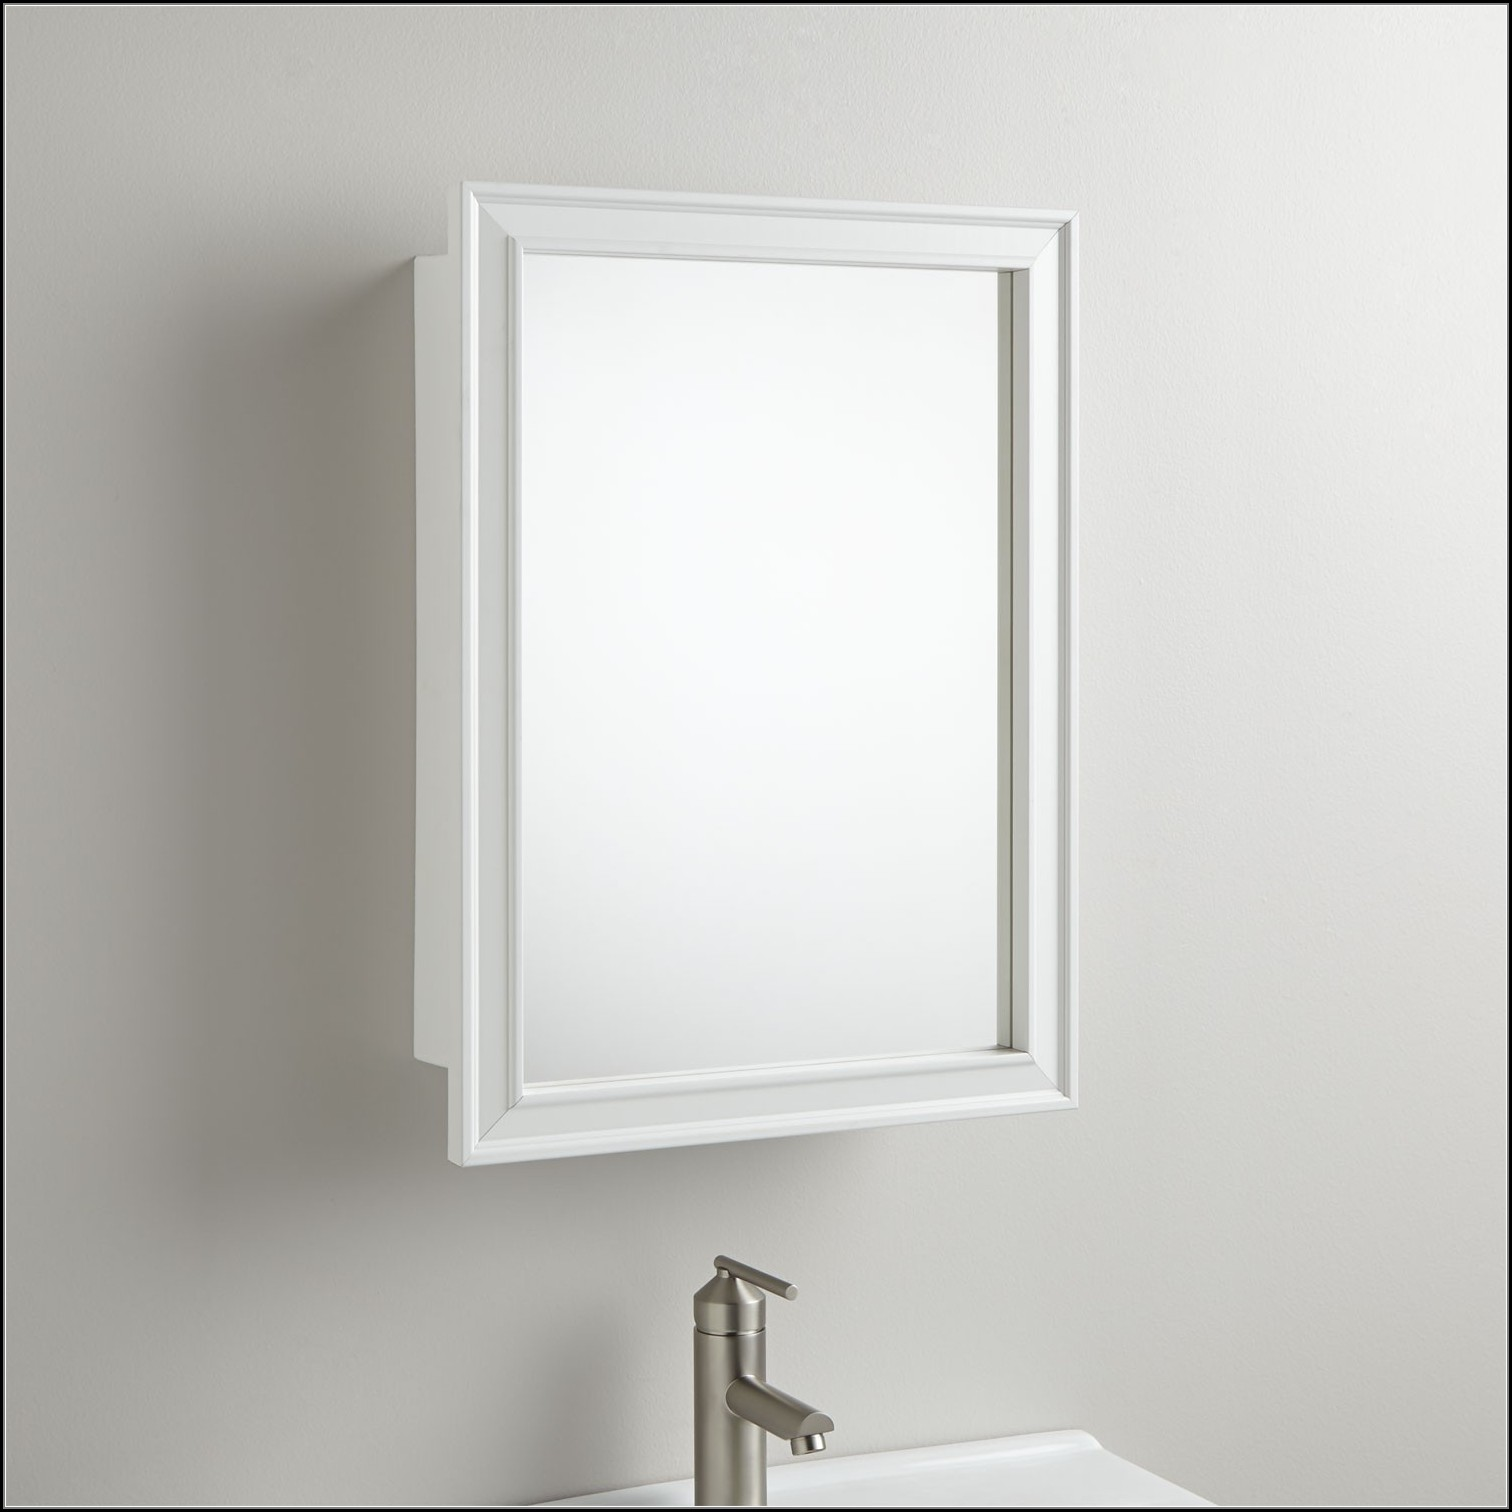 White Wooden Recessed Medicine Cabinet